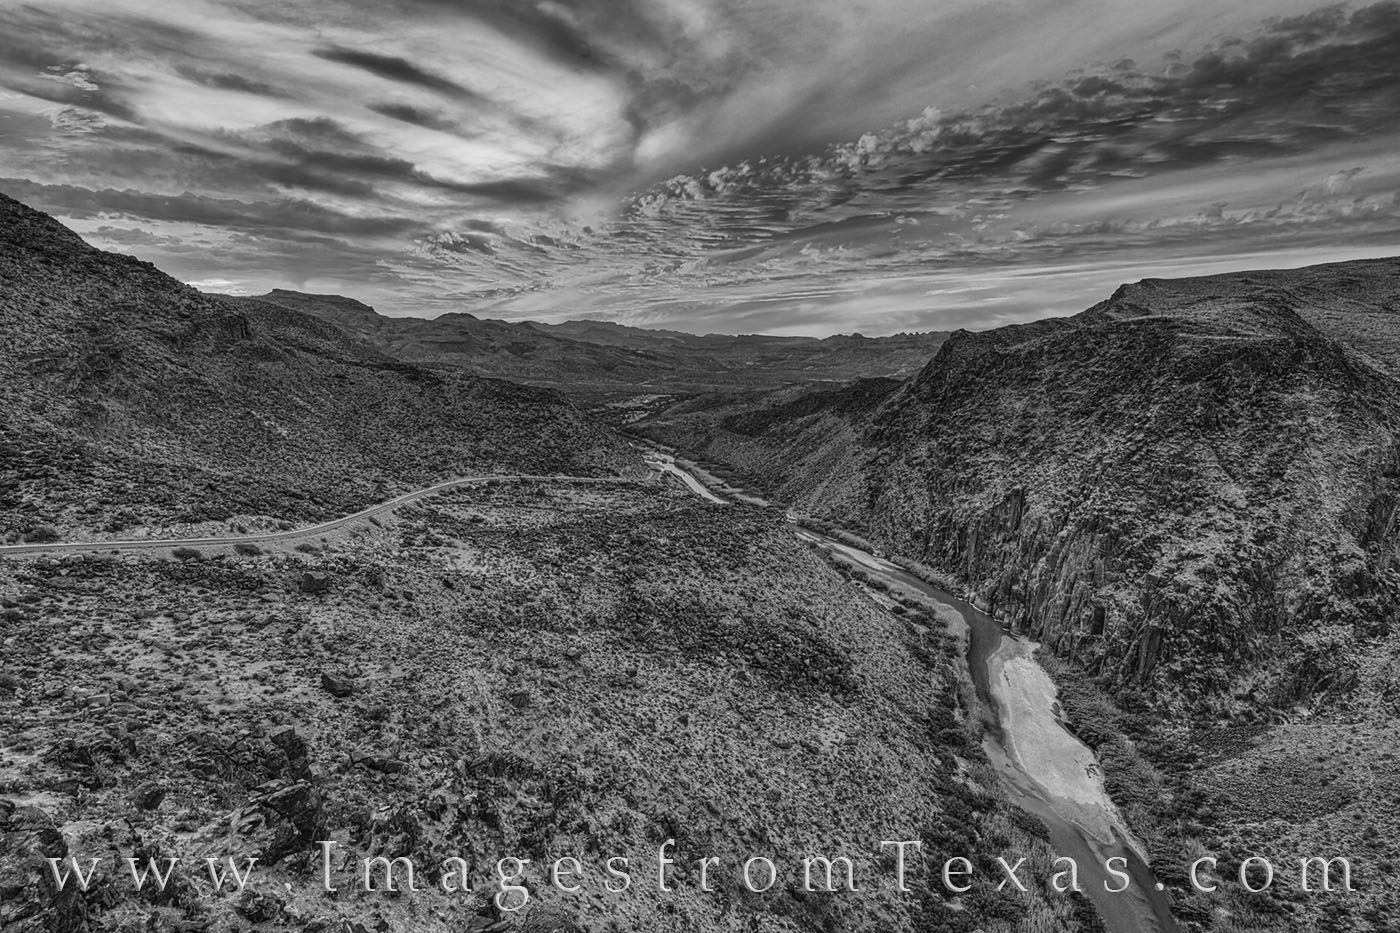 Dom rock, big bend ranch, rio grande, mexico, texas, landscapes, big hill, FM 170, presidio, lajitas, vistas, west texas, black and white, photo